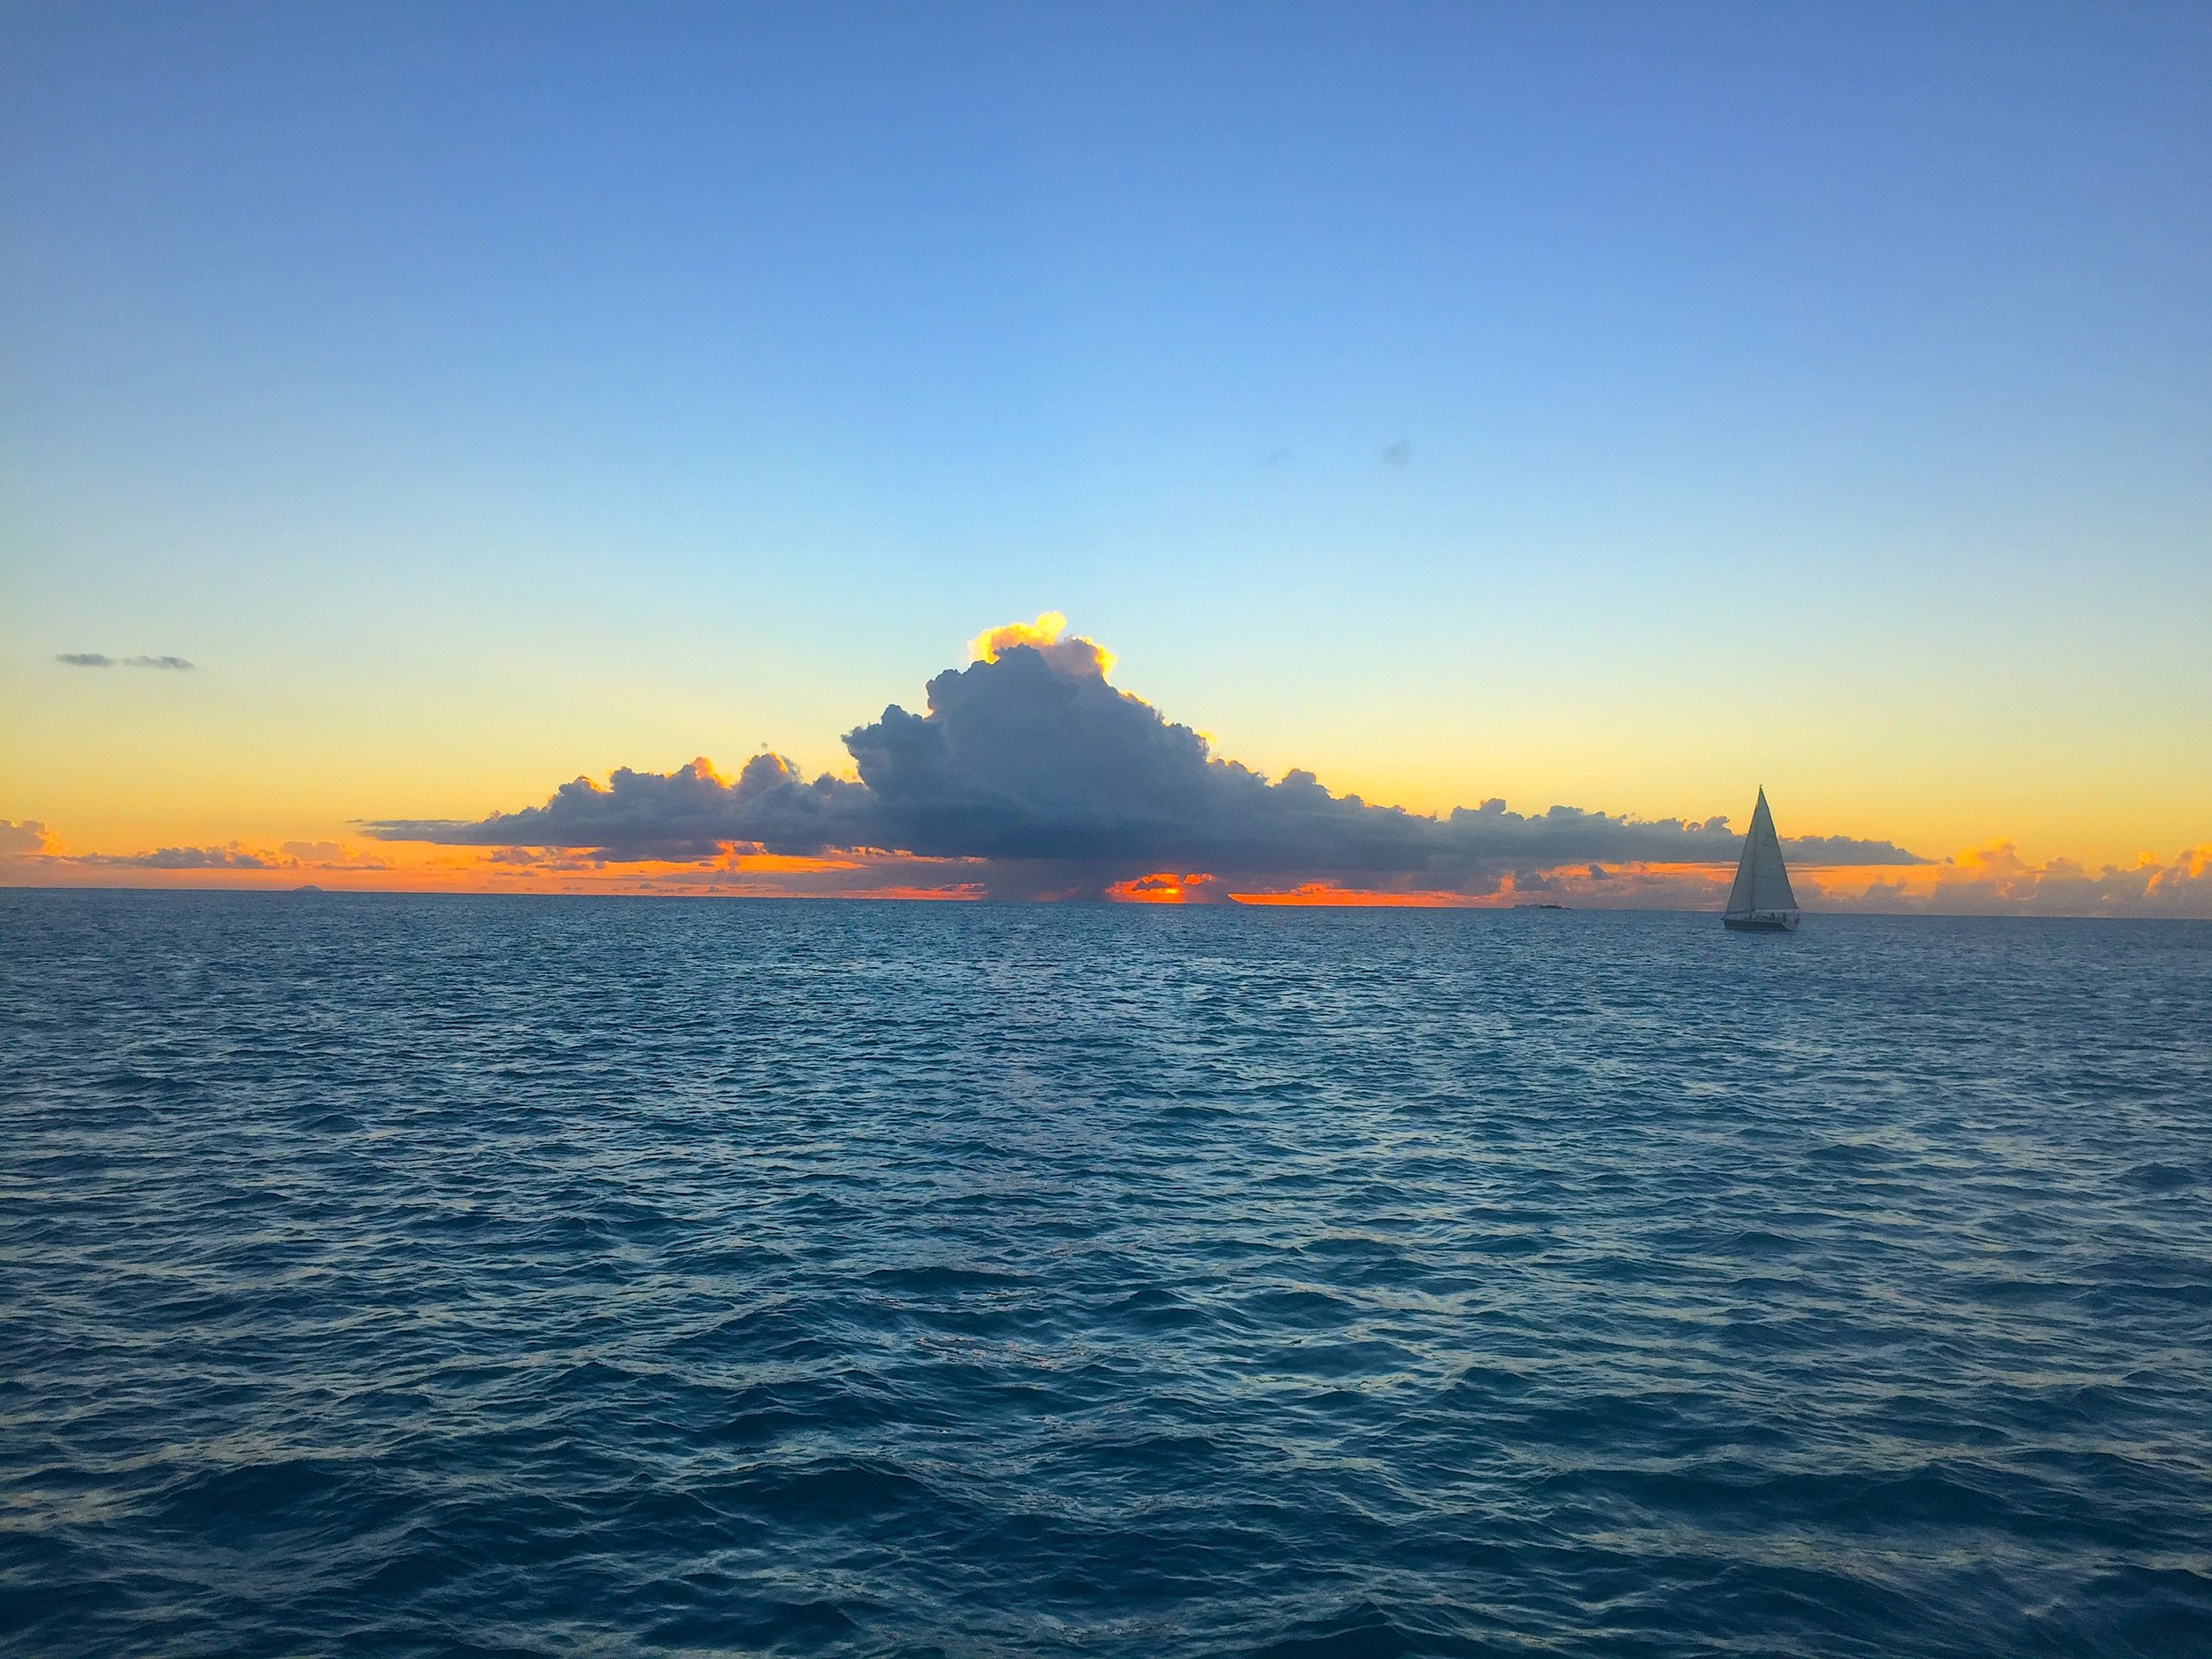 Picture taken by Captain Andrew Seligman on one of his Captained Sailing Charters